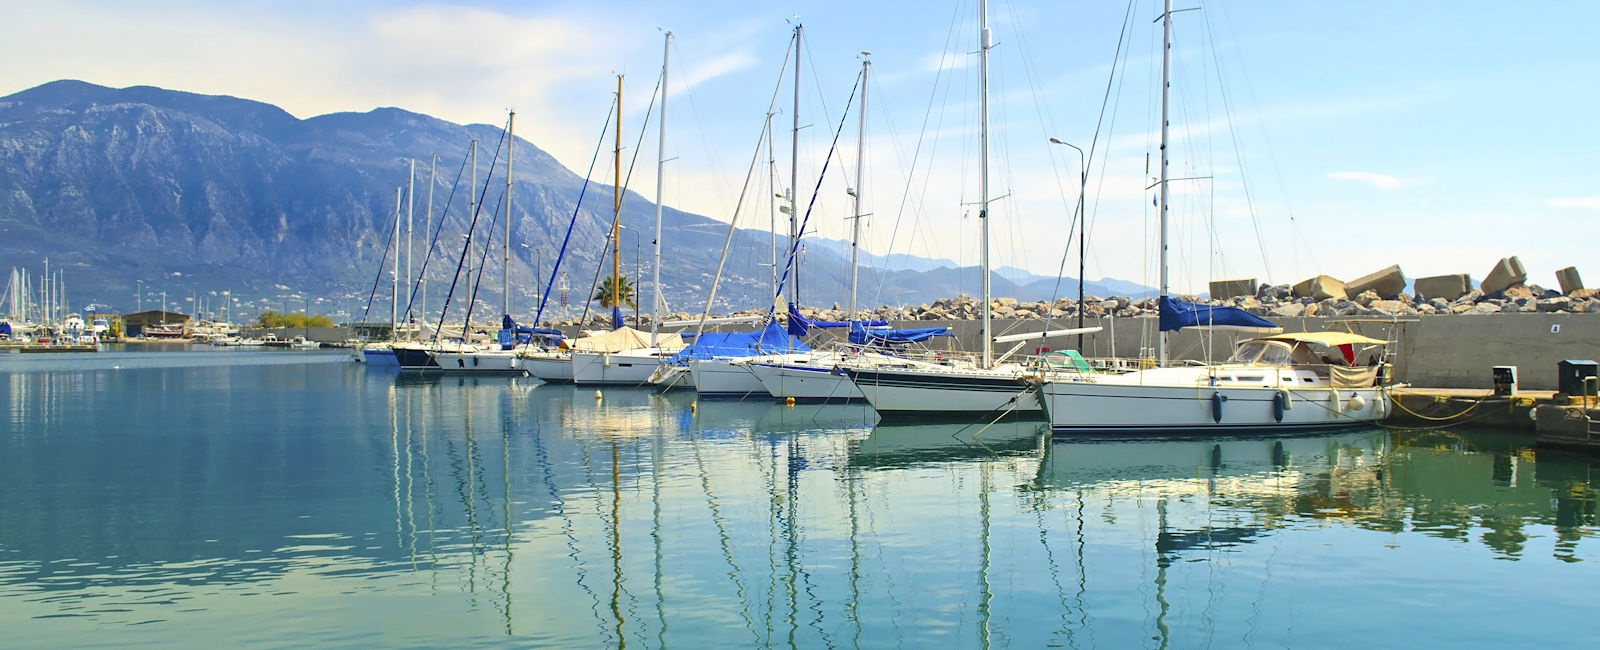 kalamata holidays, greece